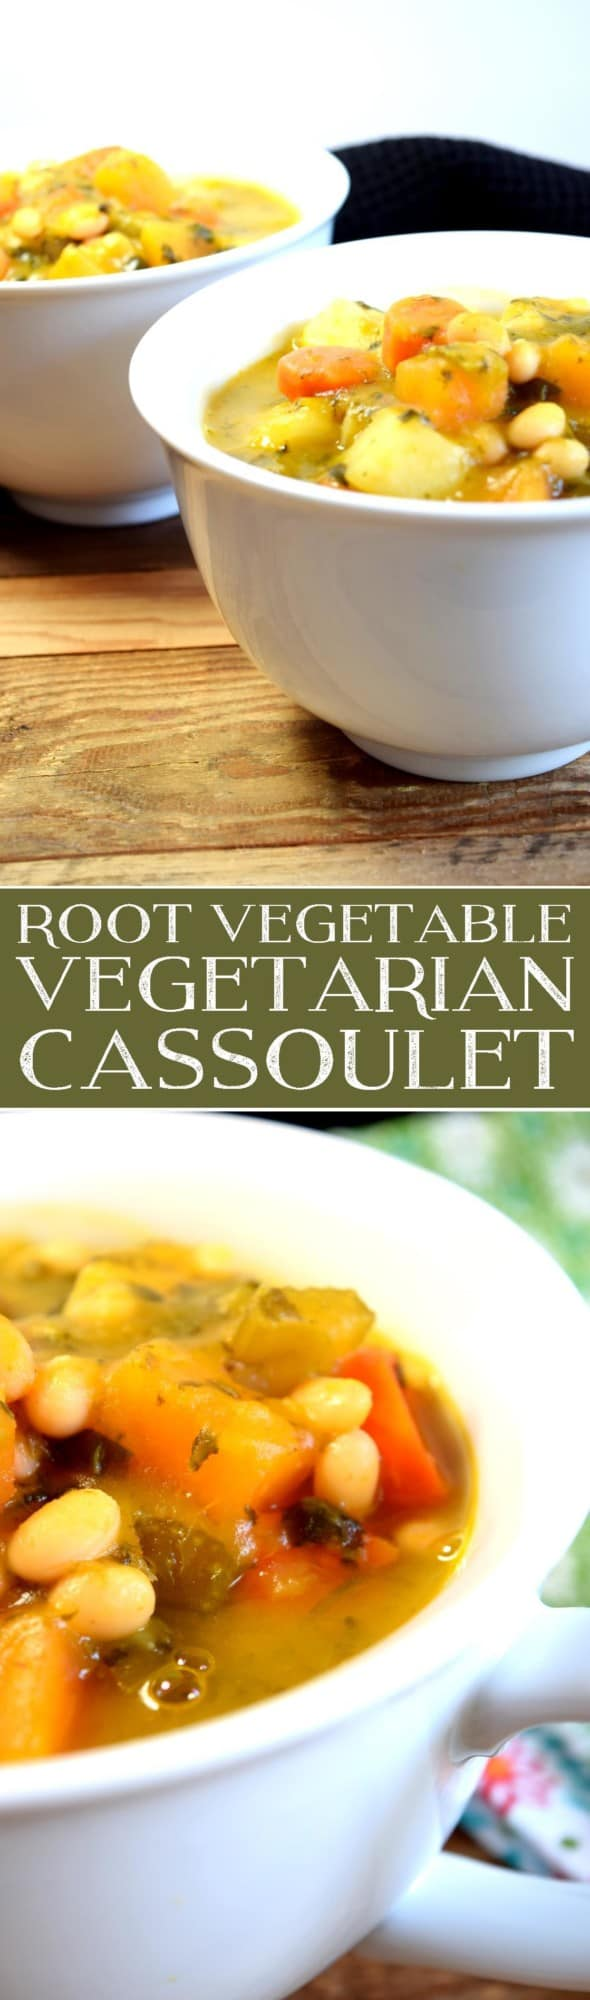 root-vegetable-vegetarian-cassoulet